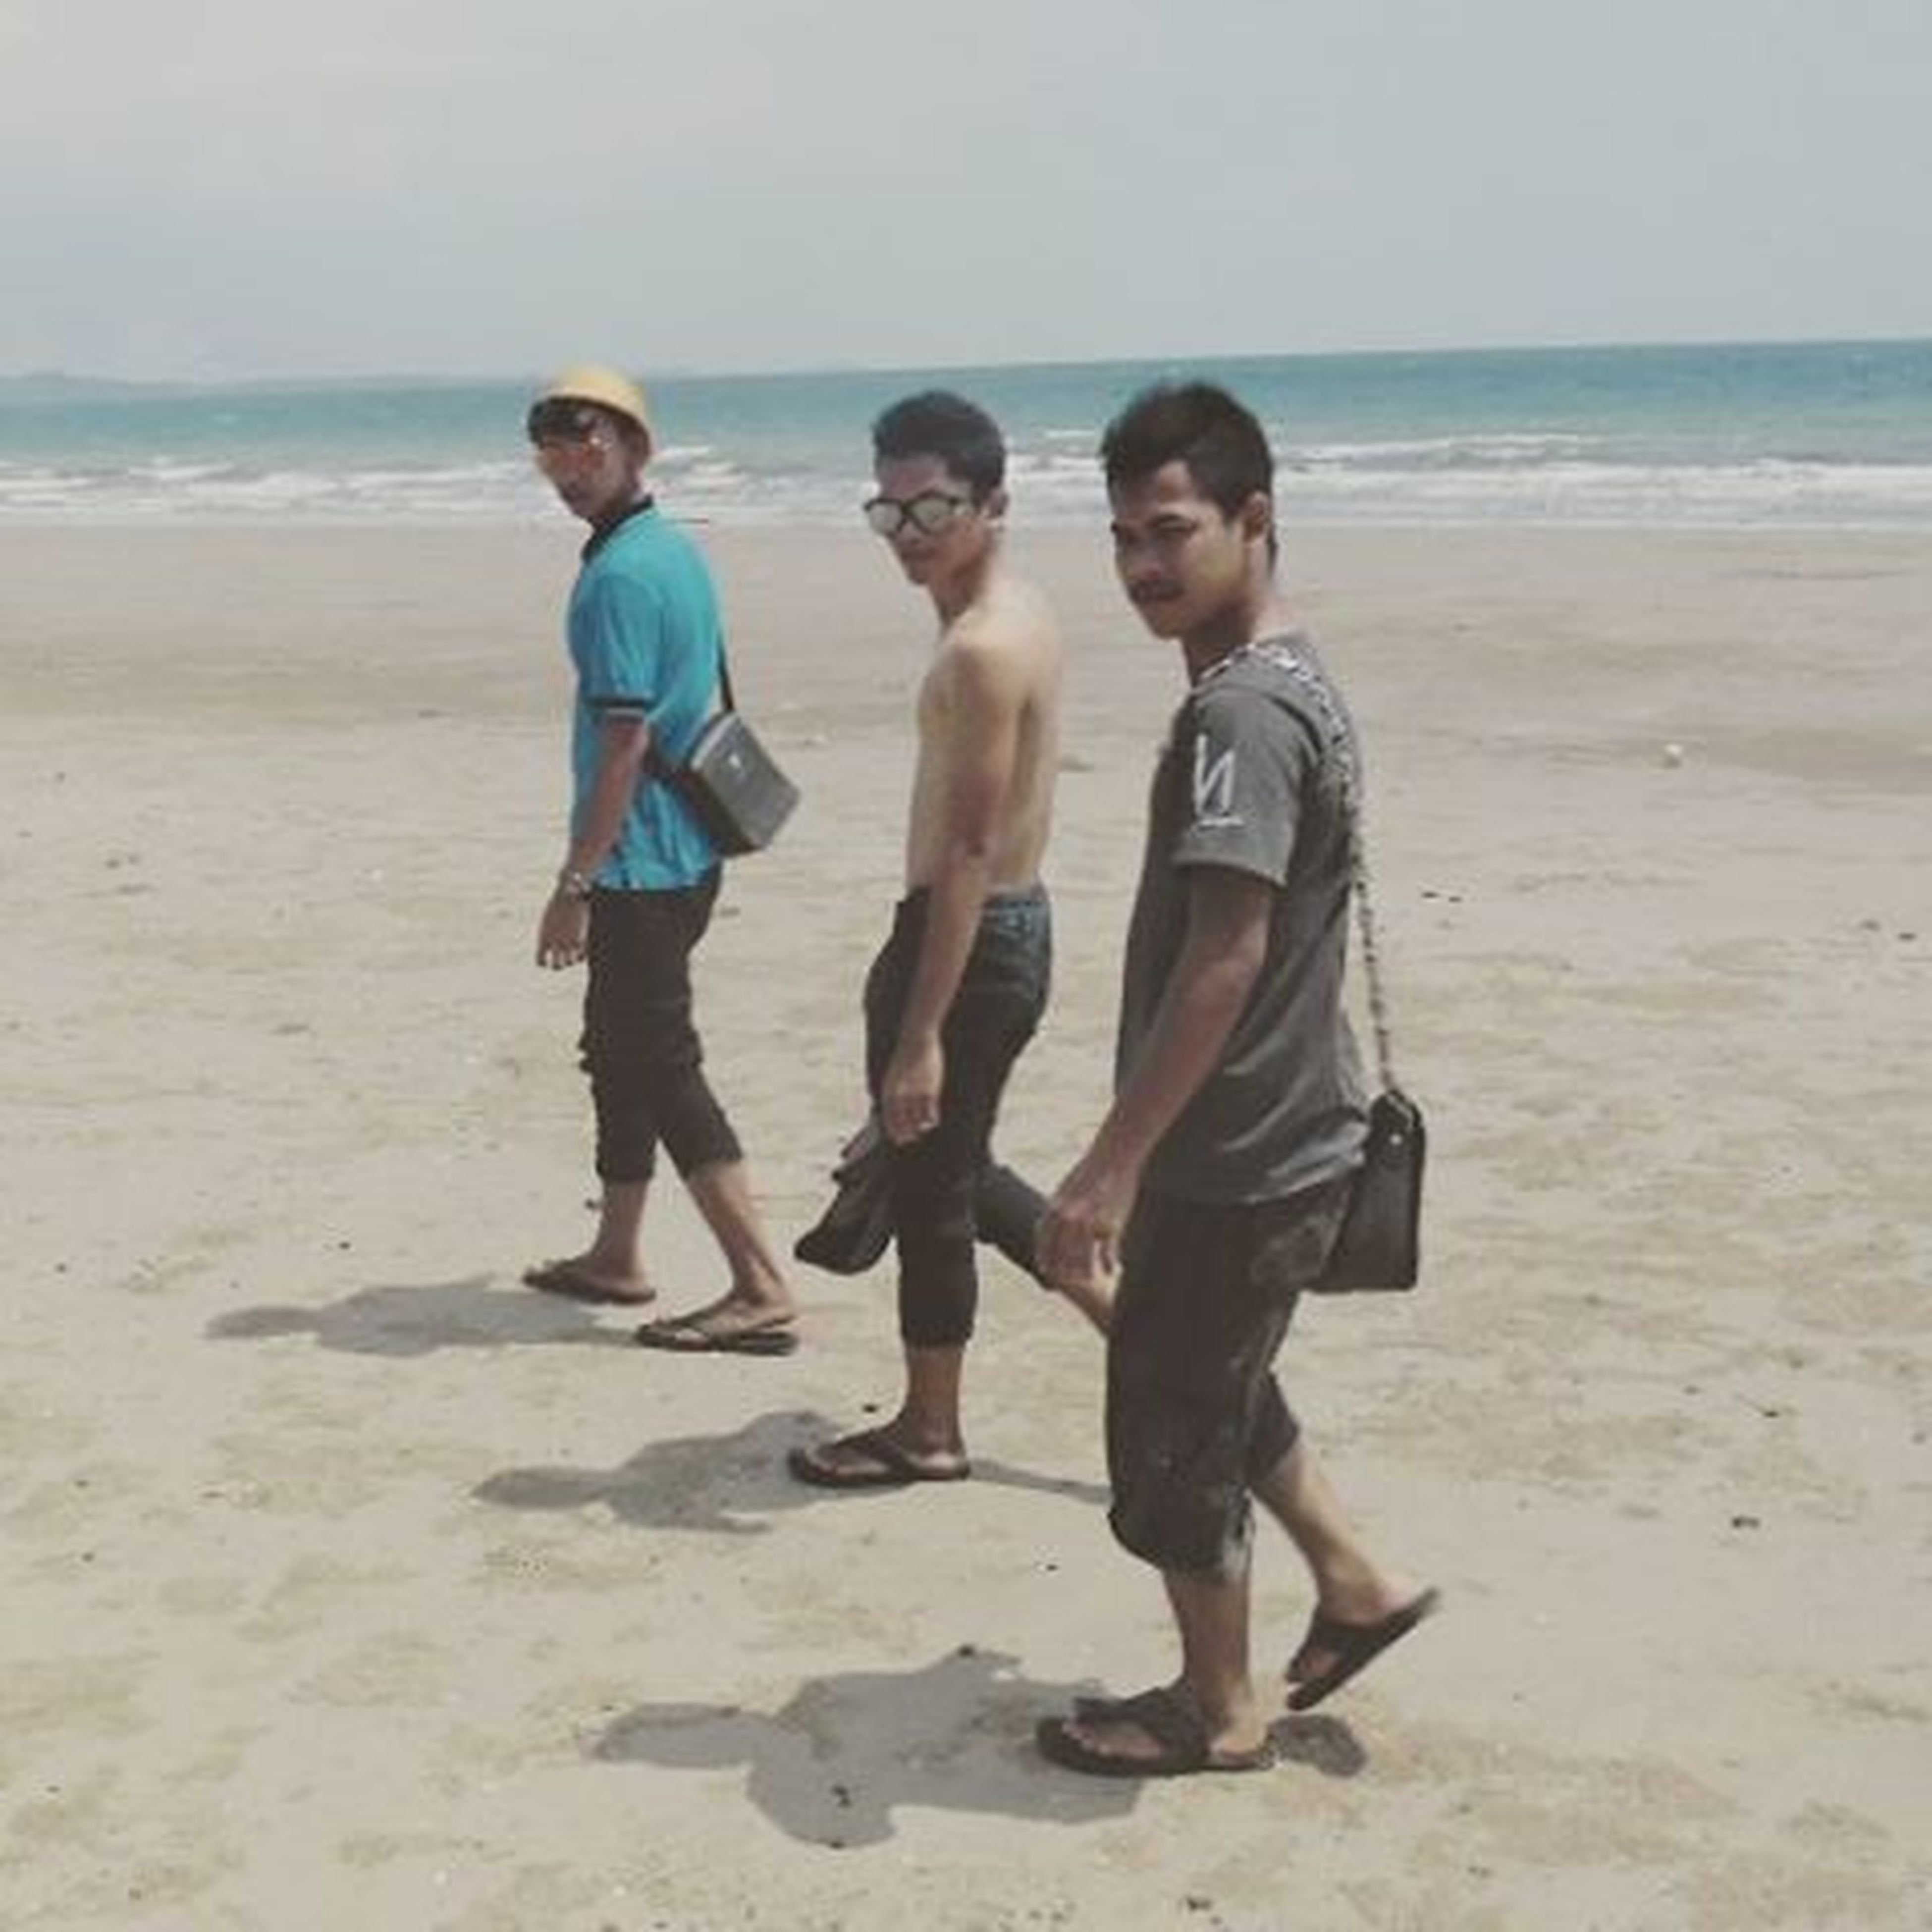 beach, sea, sand, shore, horizon over water, childhood, full length, lifestyles, water, leisure activity, togetherness, boys, vacations, person, elementary age, casual clothing, girls, bonding